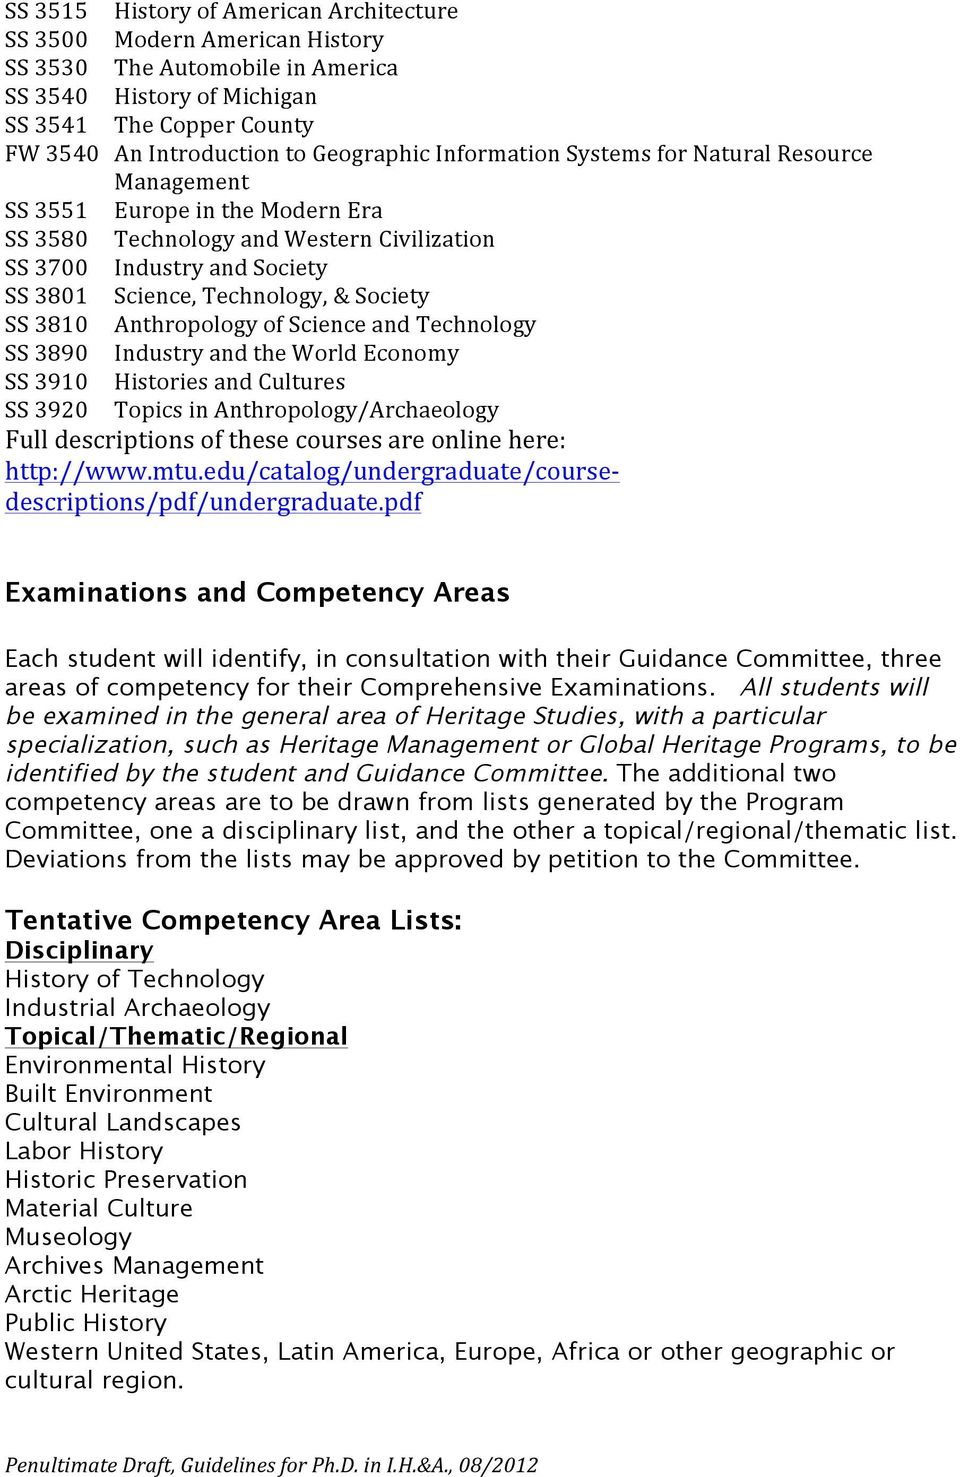 3810 Anthropology of Science and Technology SS 3890 Industry and the World Economy SS 3910 Histories and Cultures SS 3920 Topics in Anthropology/Archaeology Full descriptions of these courses are